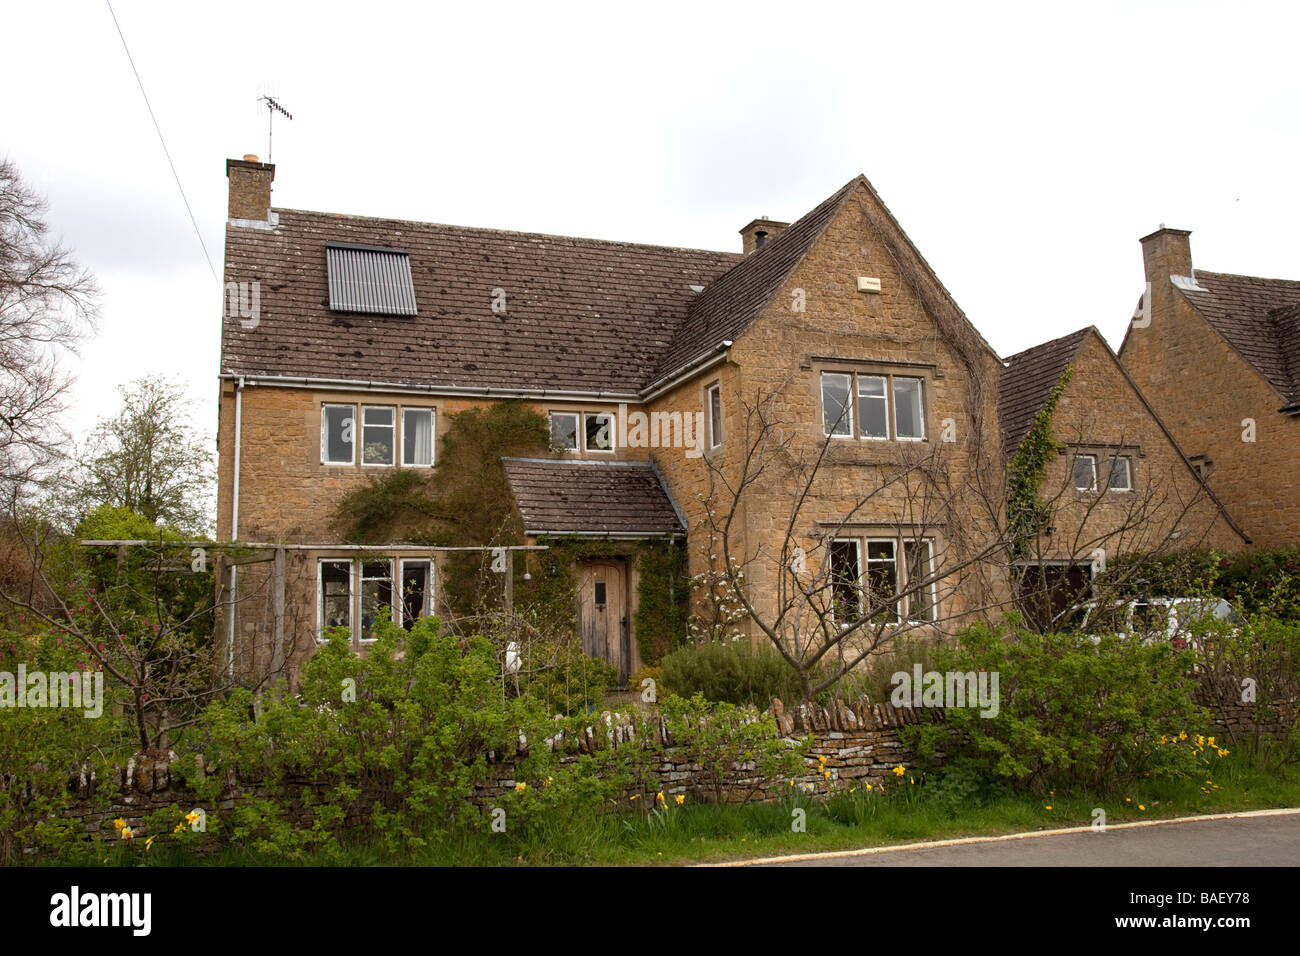 Solar thermal evacuated tubes to heat water on tile roof of large Cotswold house UK - Stock Image